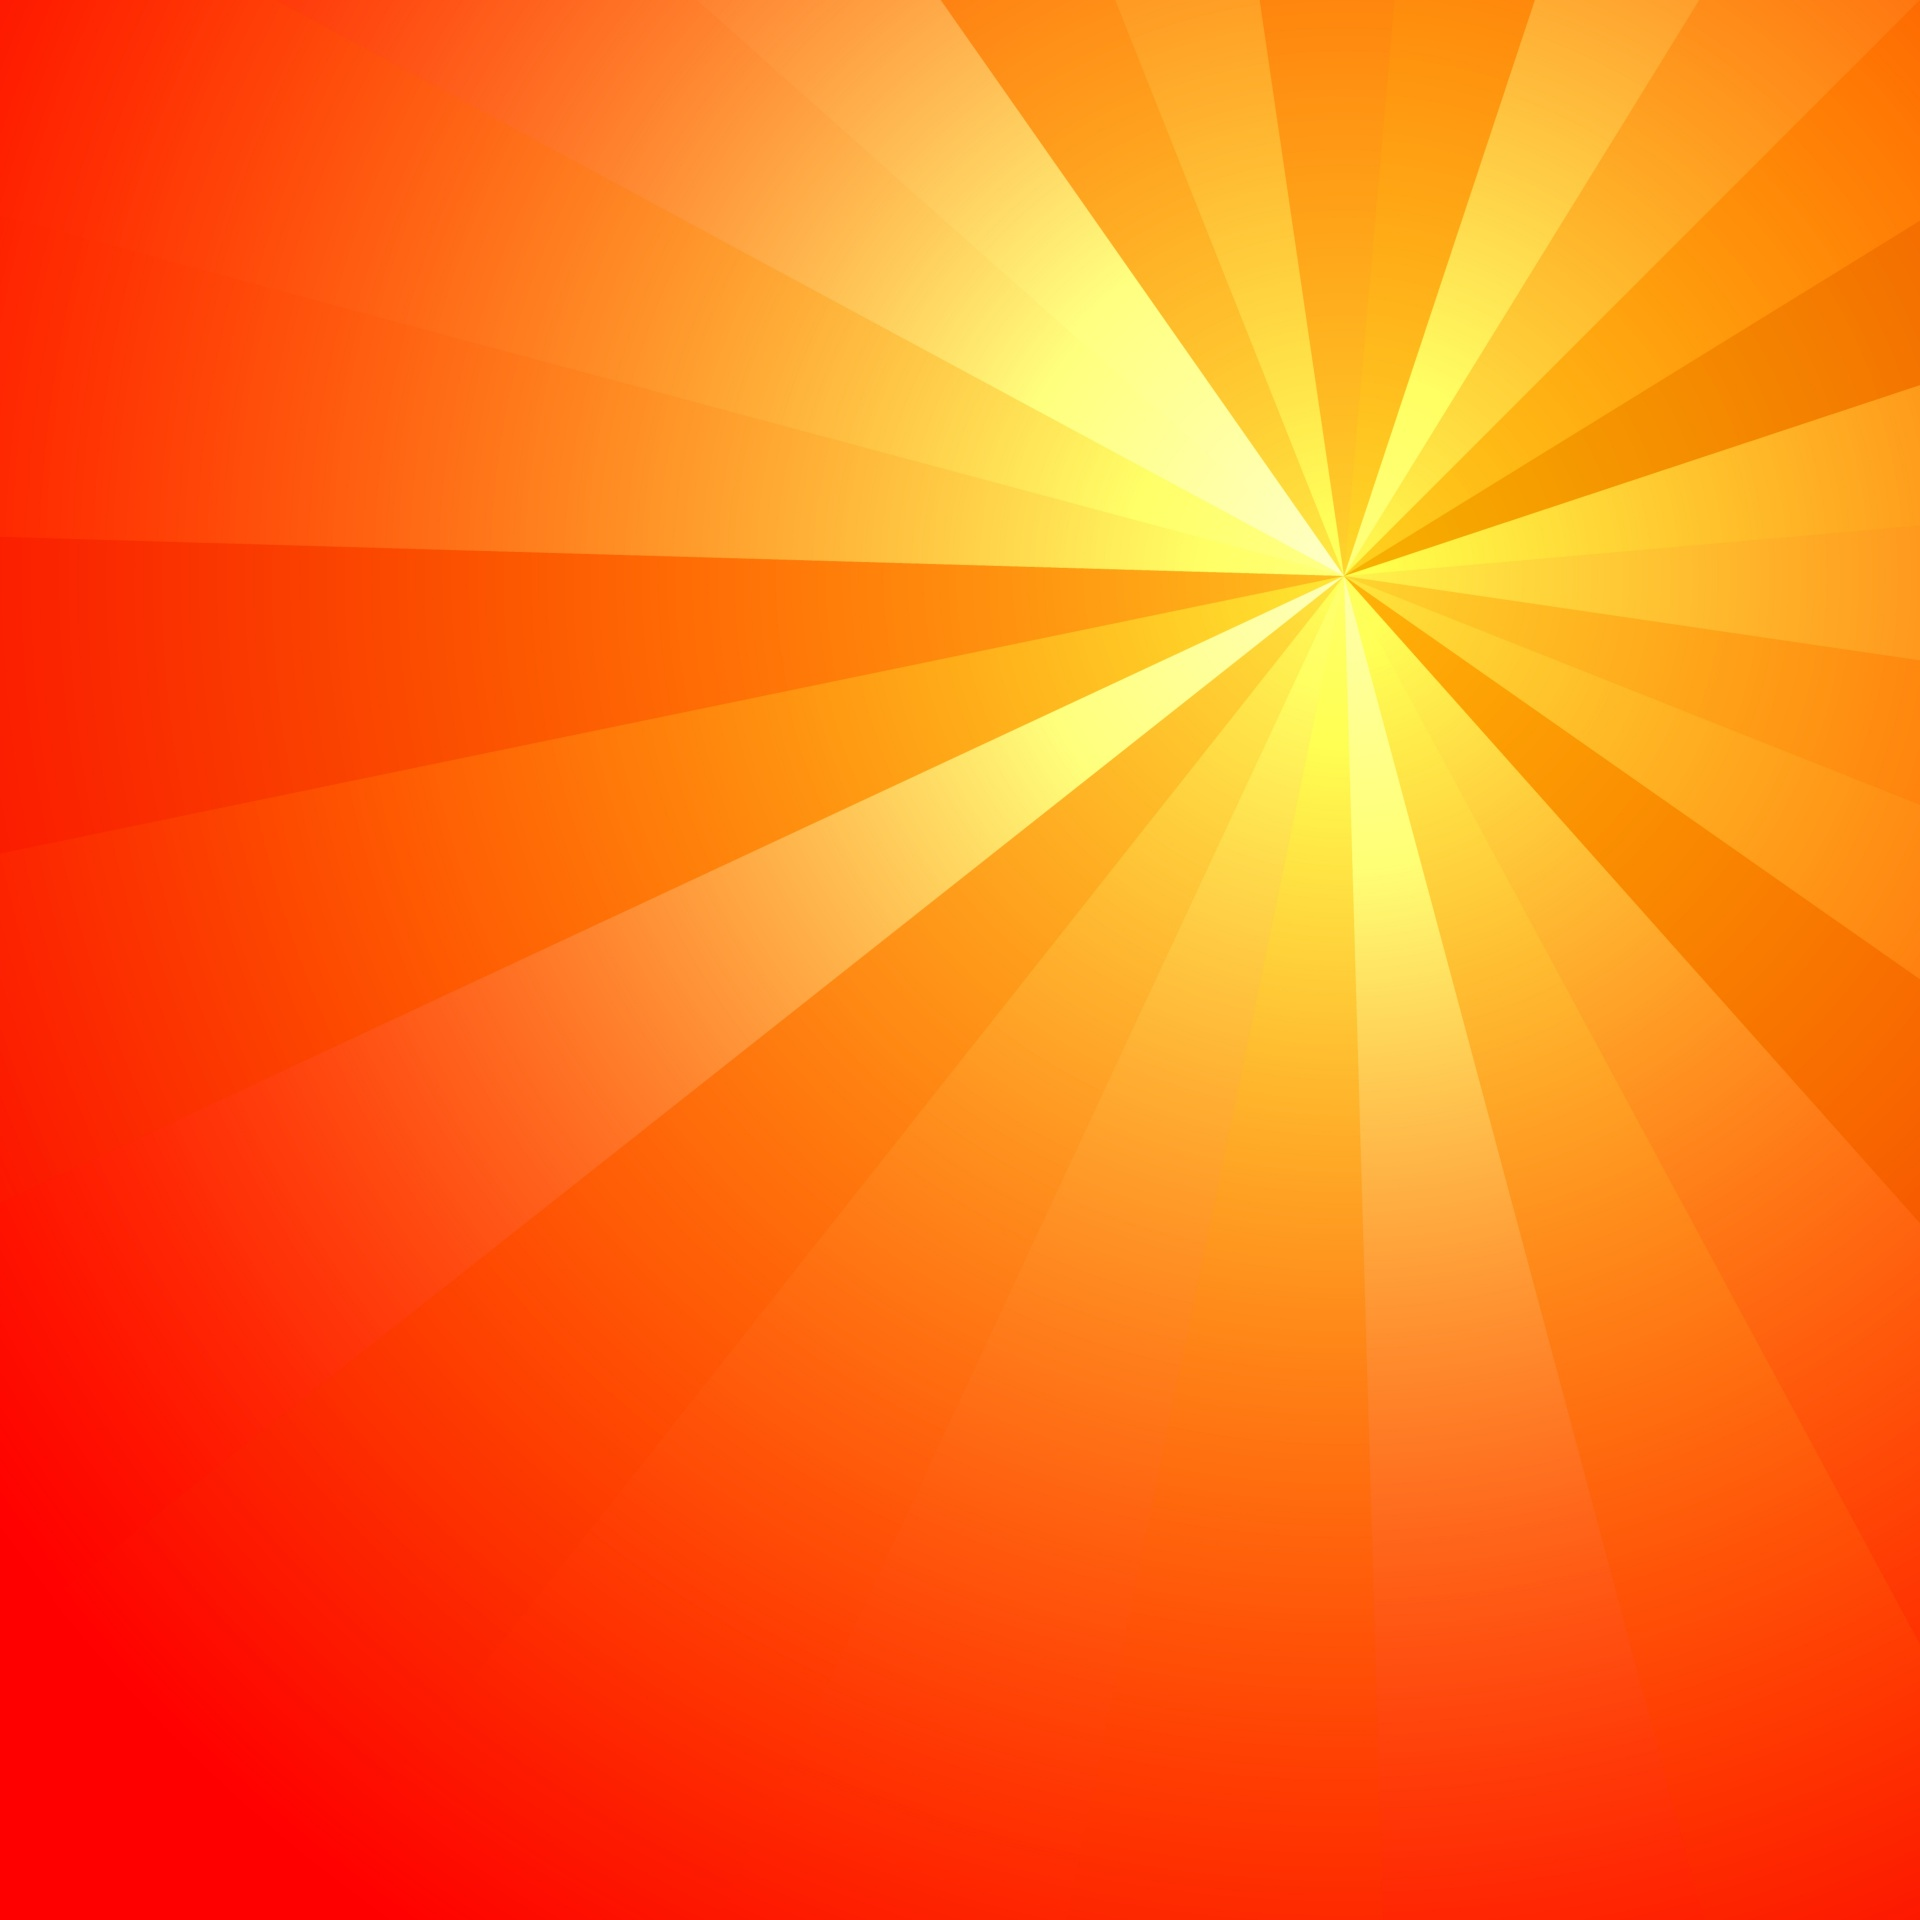 Sun Rays Free Stock Photo - Public Domain Pictures